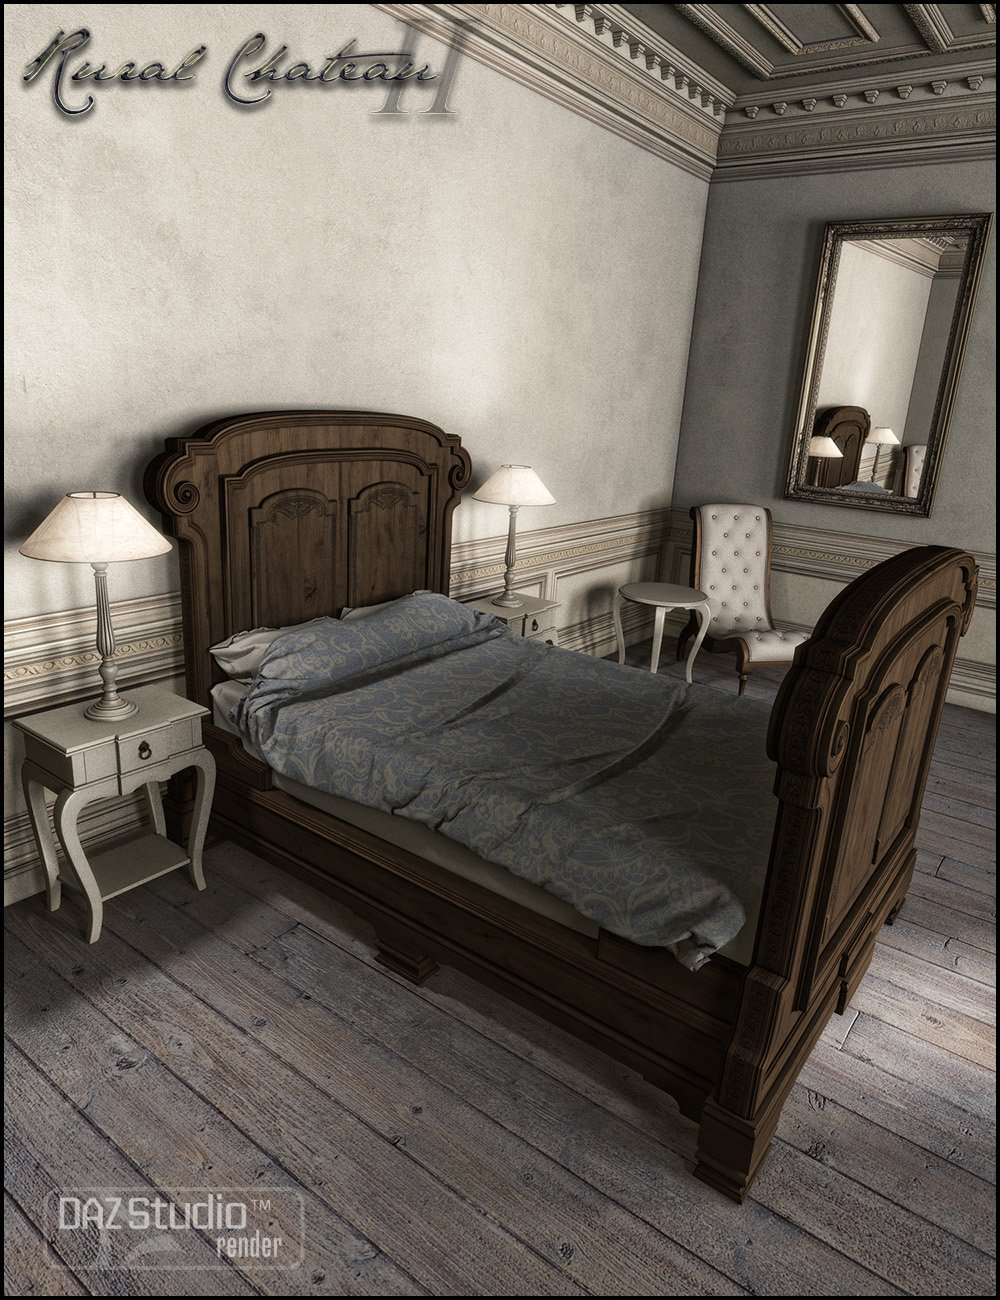 Rural Chateau II by: Jack Tomalin, 3D Models by Daz 3D